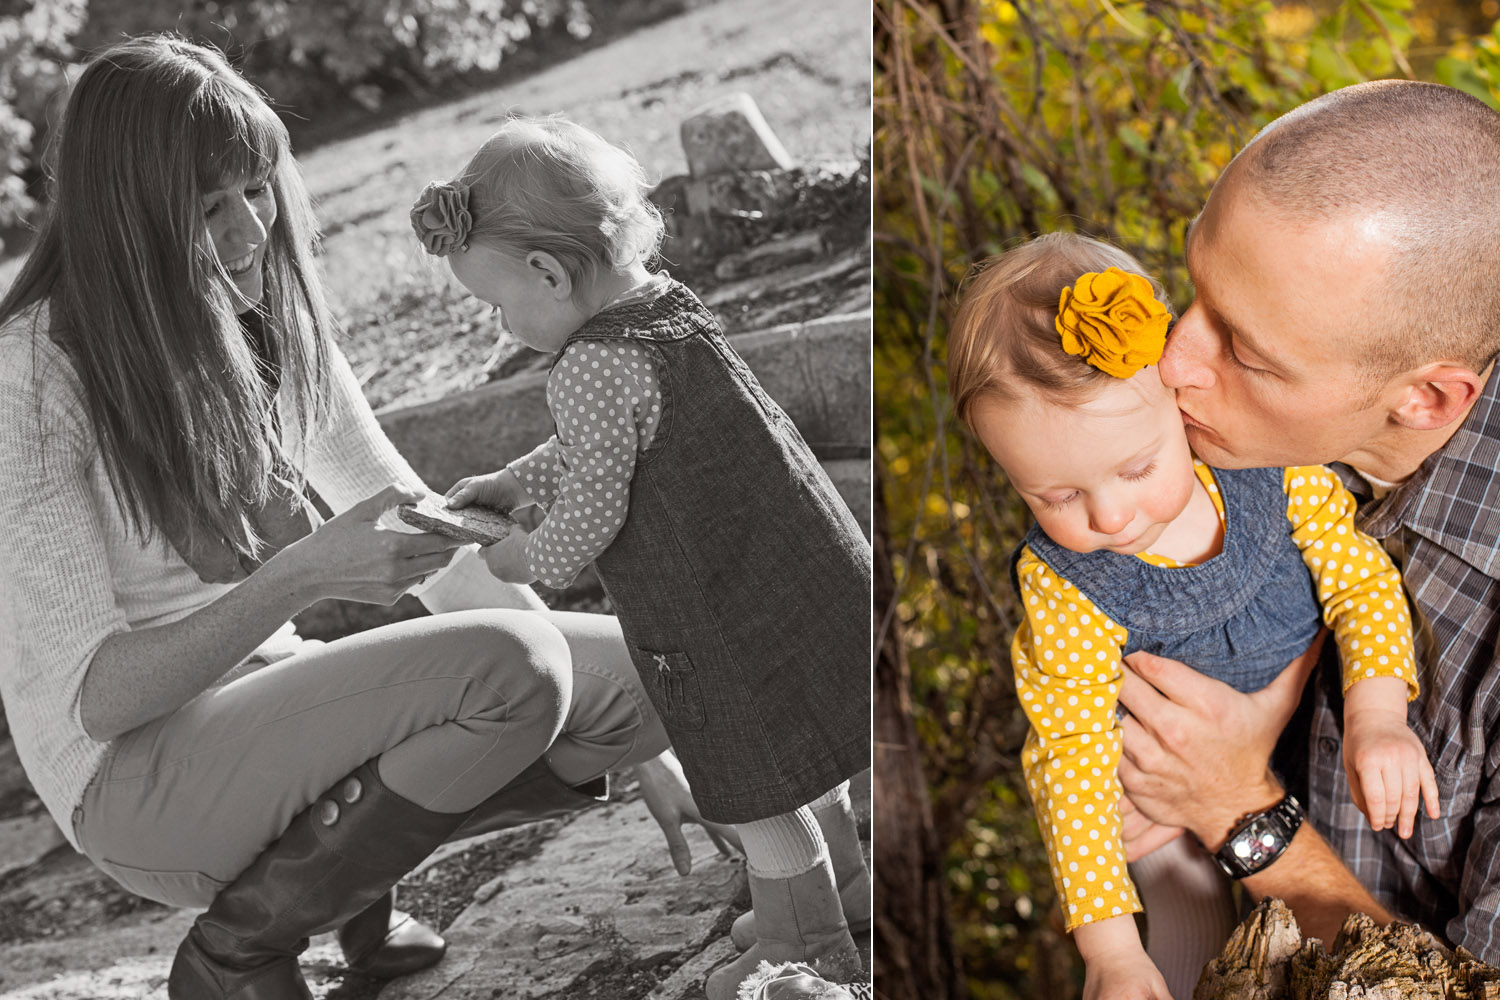 Northern_Utah_Photographer-WatkinsFamilyPhotos-12.jpg